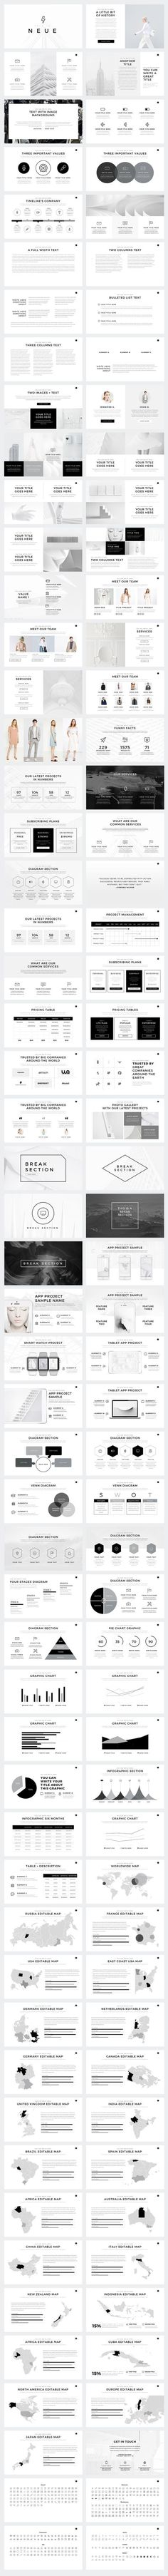 Present your works in a professional and clean way with Neue Minimal PowerPoint Template. This is a simple, contemporary but powerful design that includes creative photo layouts, infographics, tables, vector icons, maps, diagrams and tons of great features to show your work and your company profile on another level.